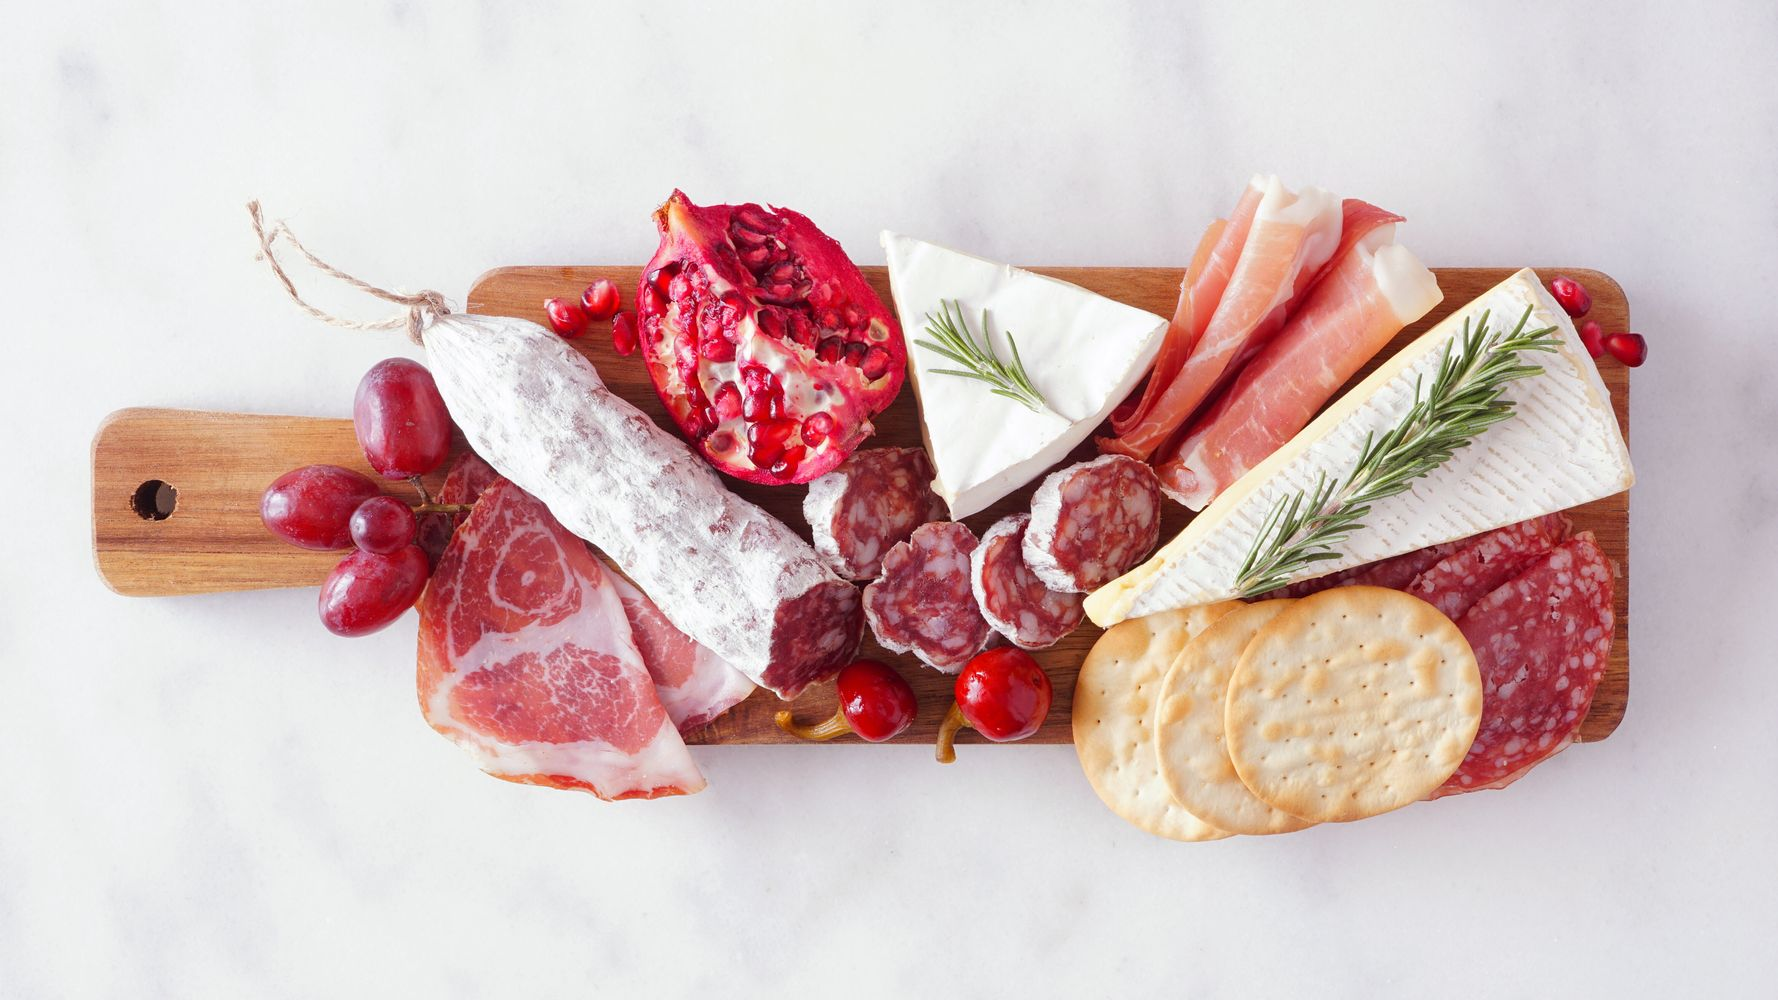 The Prettiest Meat And Cheese Boards For Your Impressive Charcuterie Spreads